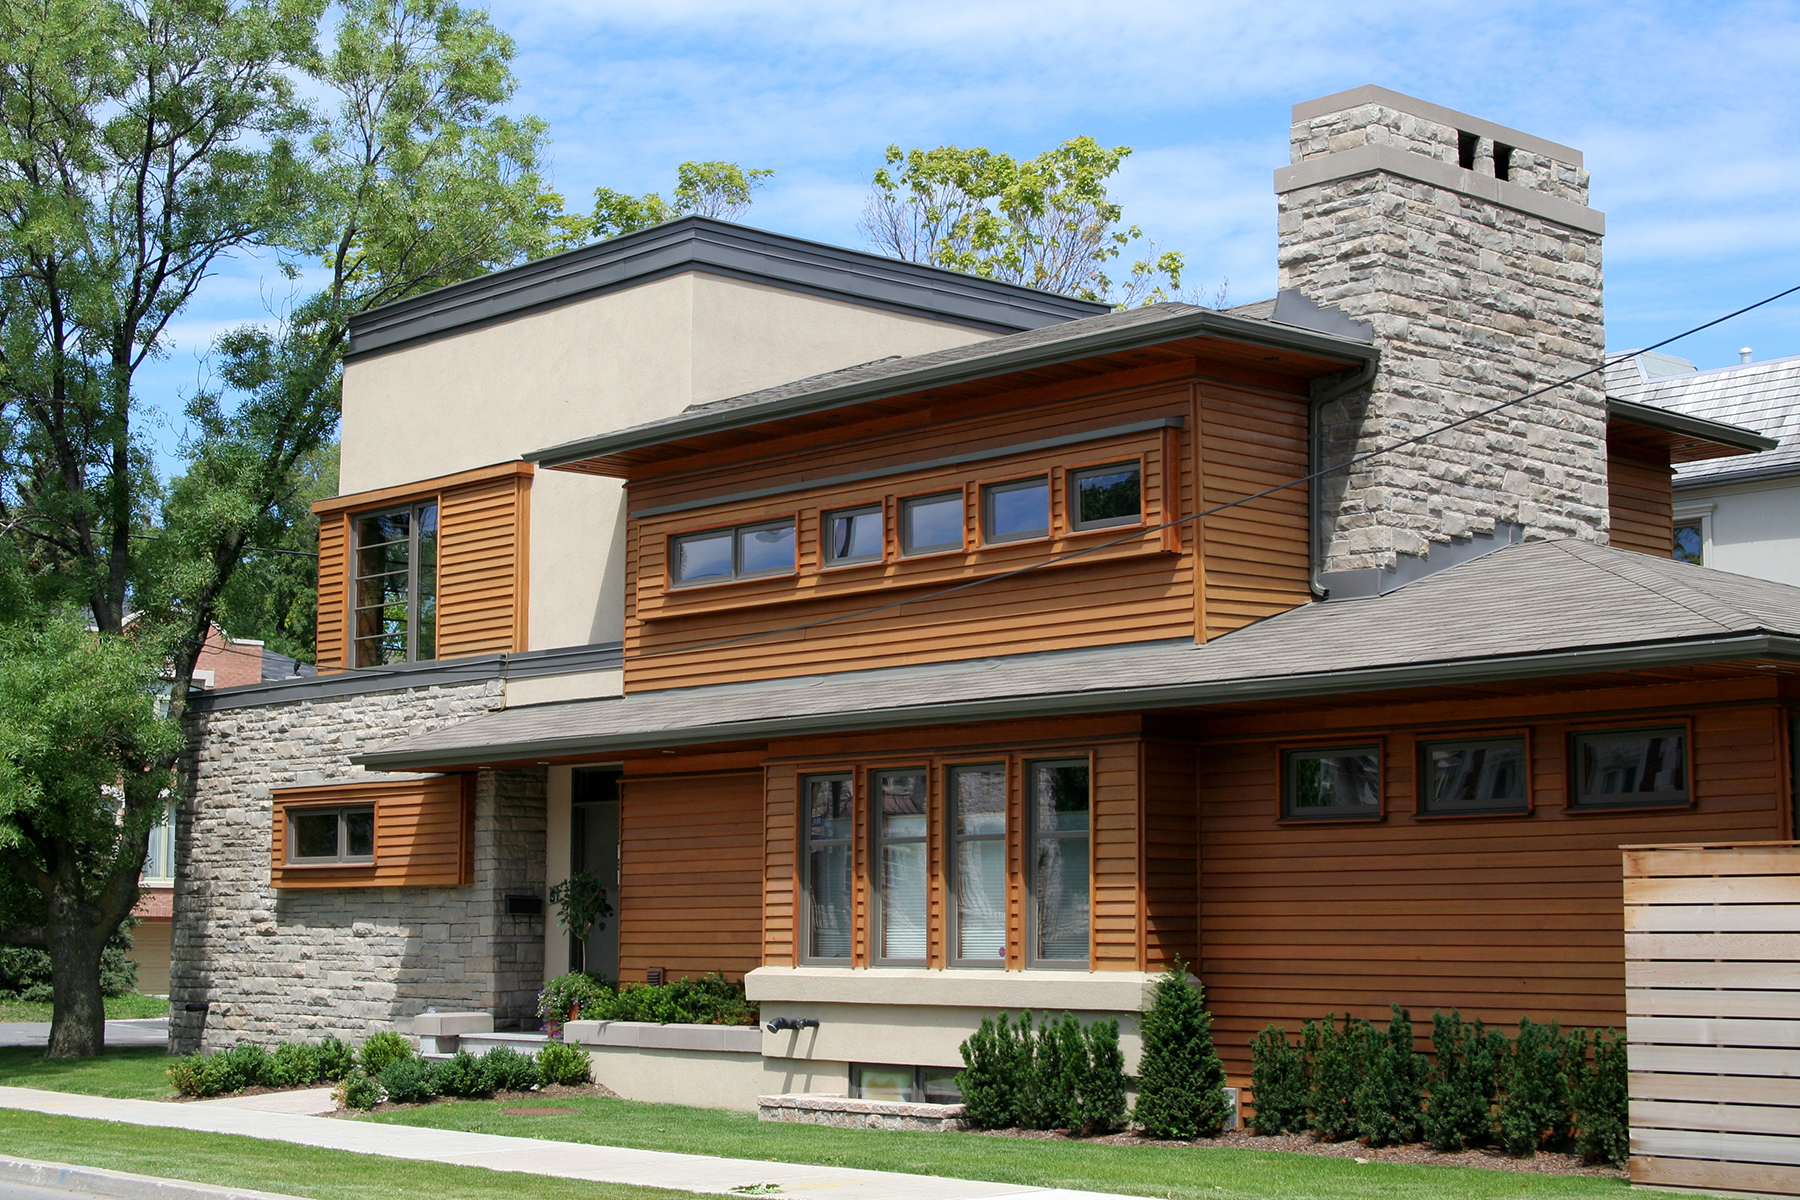 Country-Lumber-Siding-Modern-Home.jpg